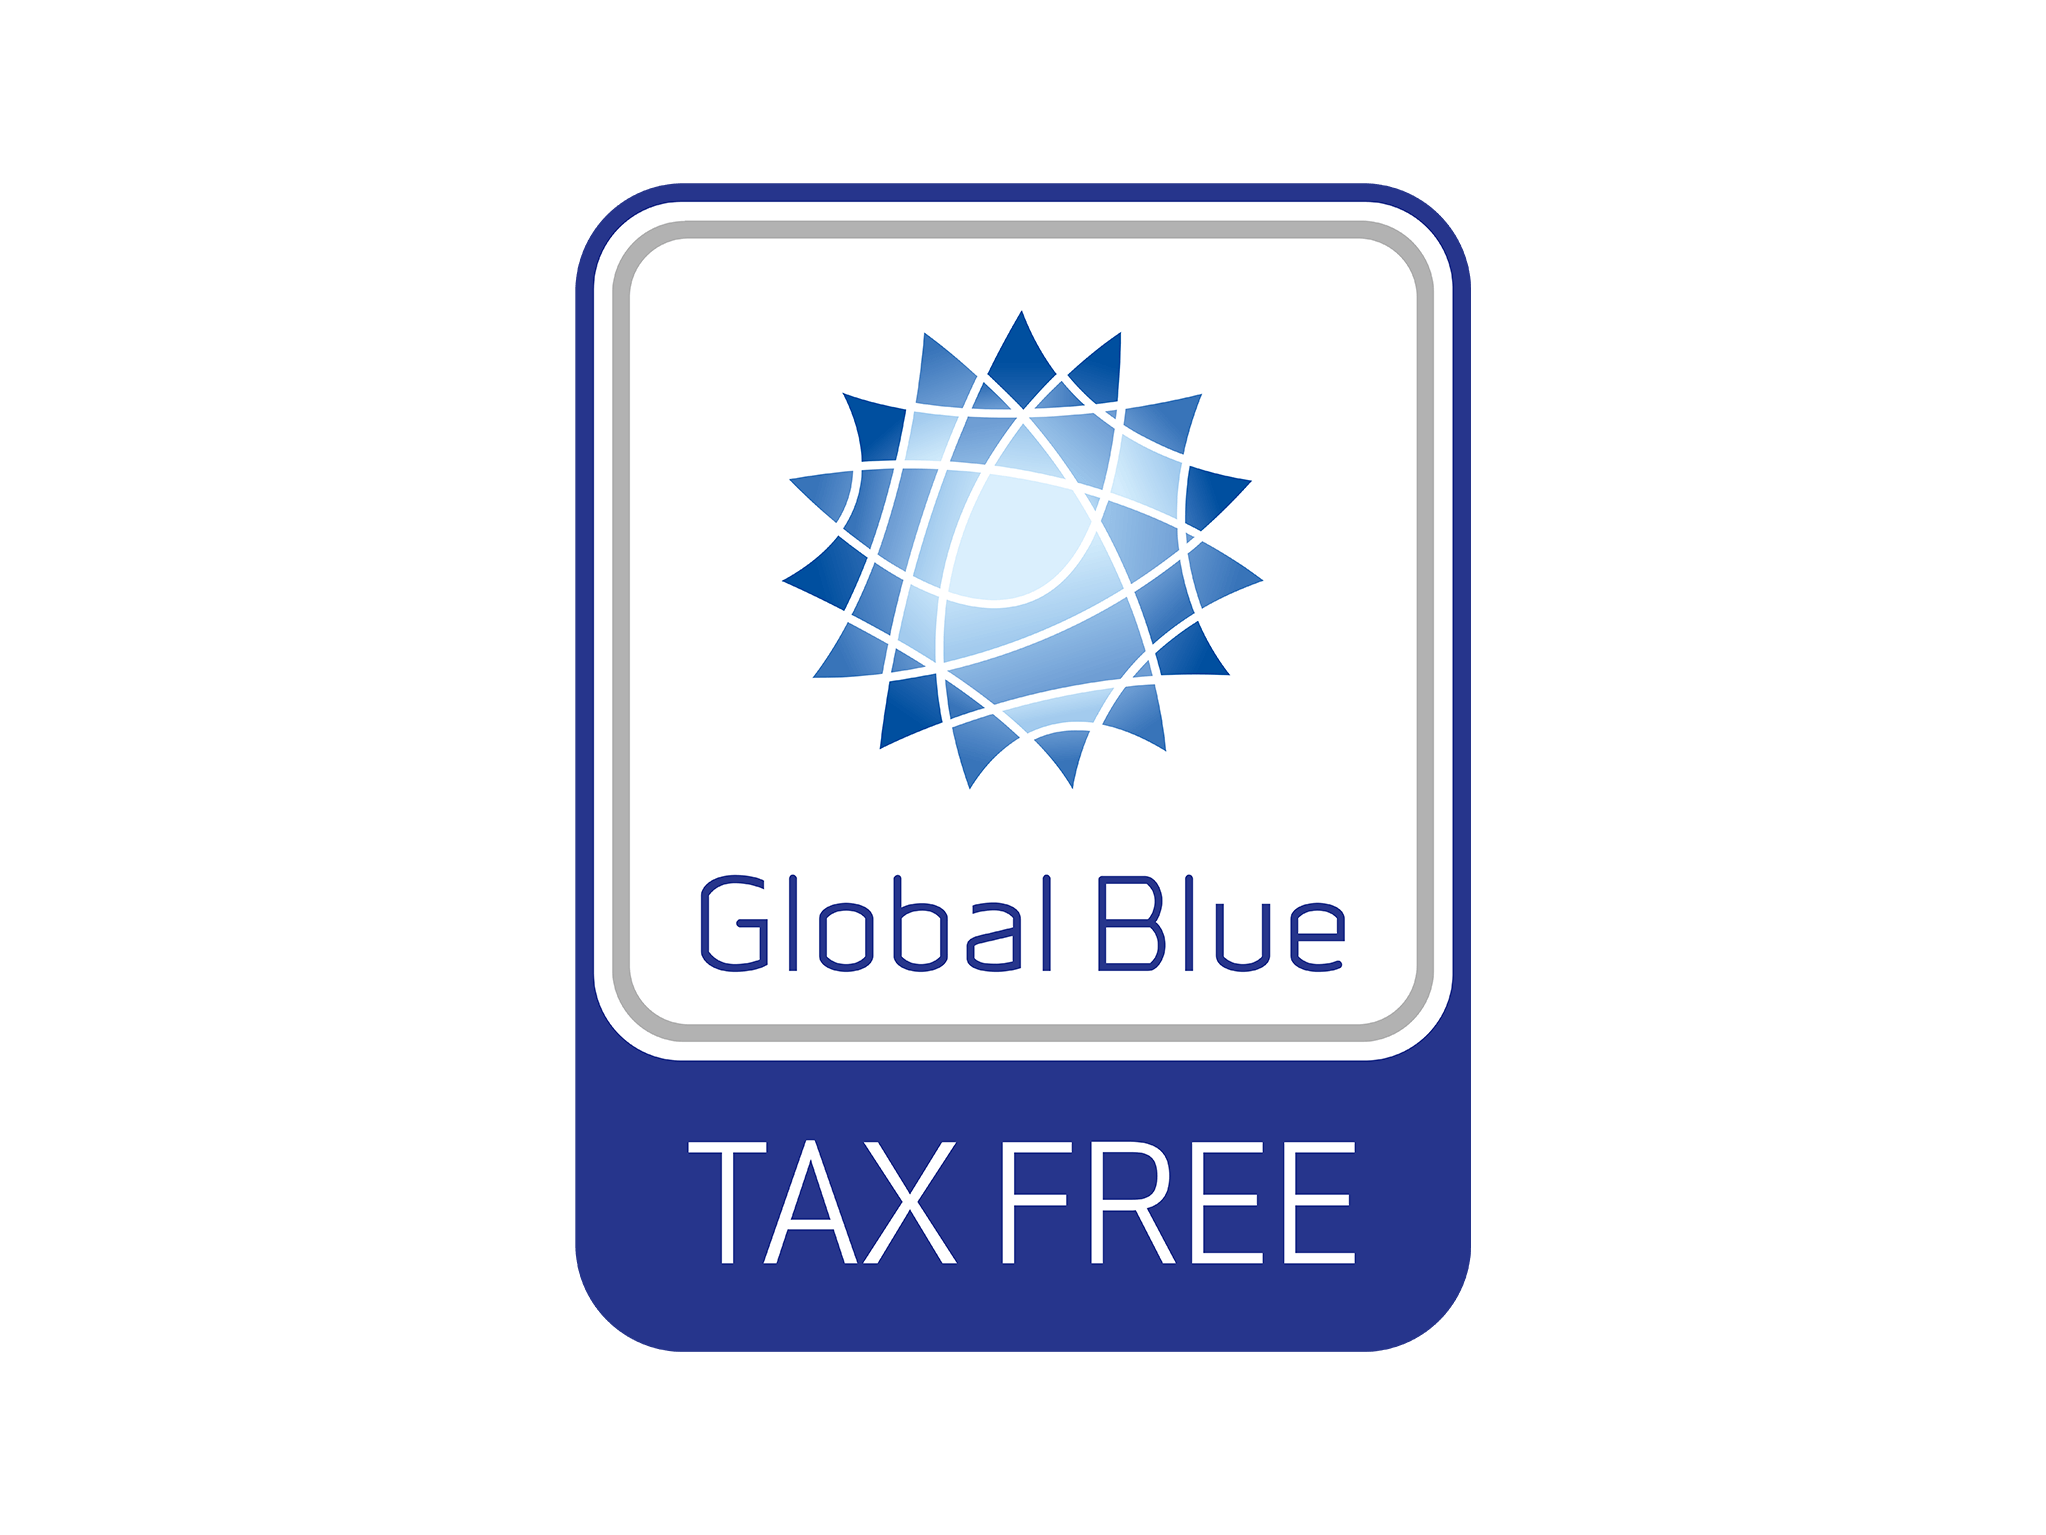 tax-free-global-blue-logo